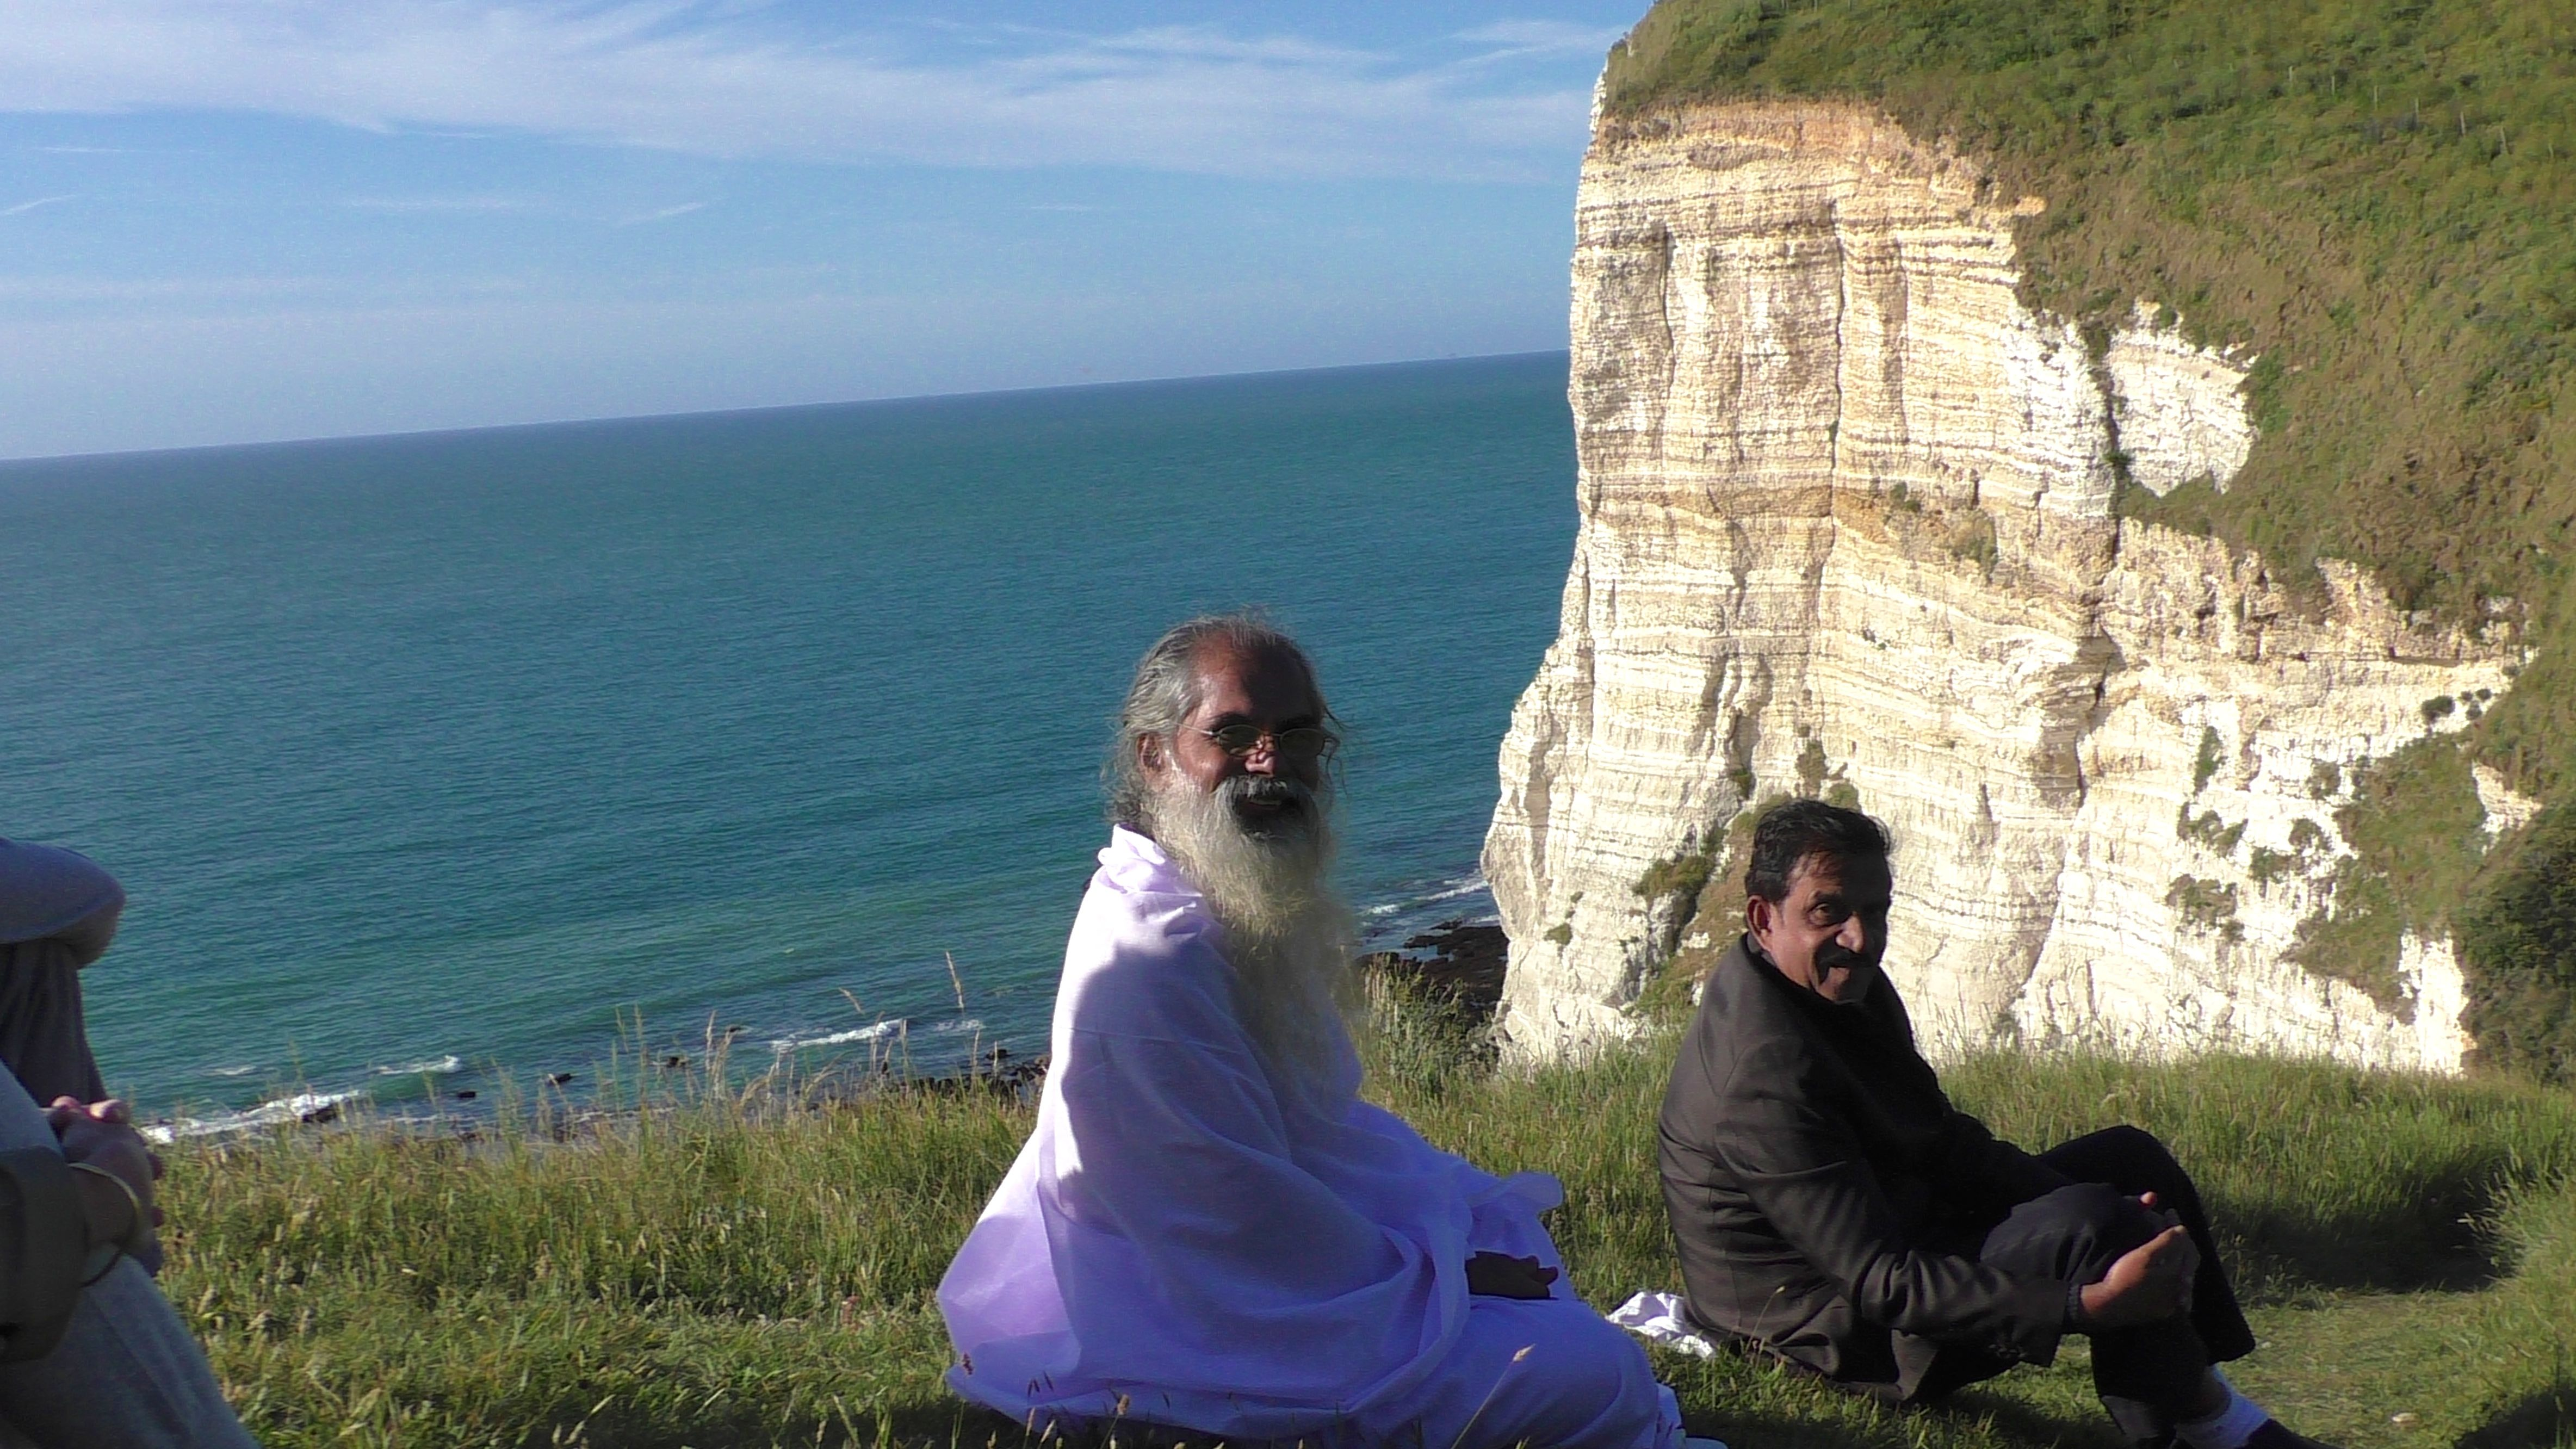 Swami Isa at cliffs of Normandy